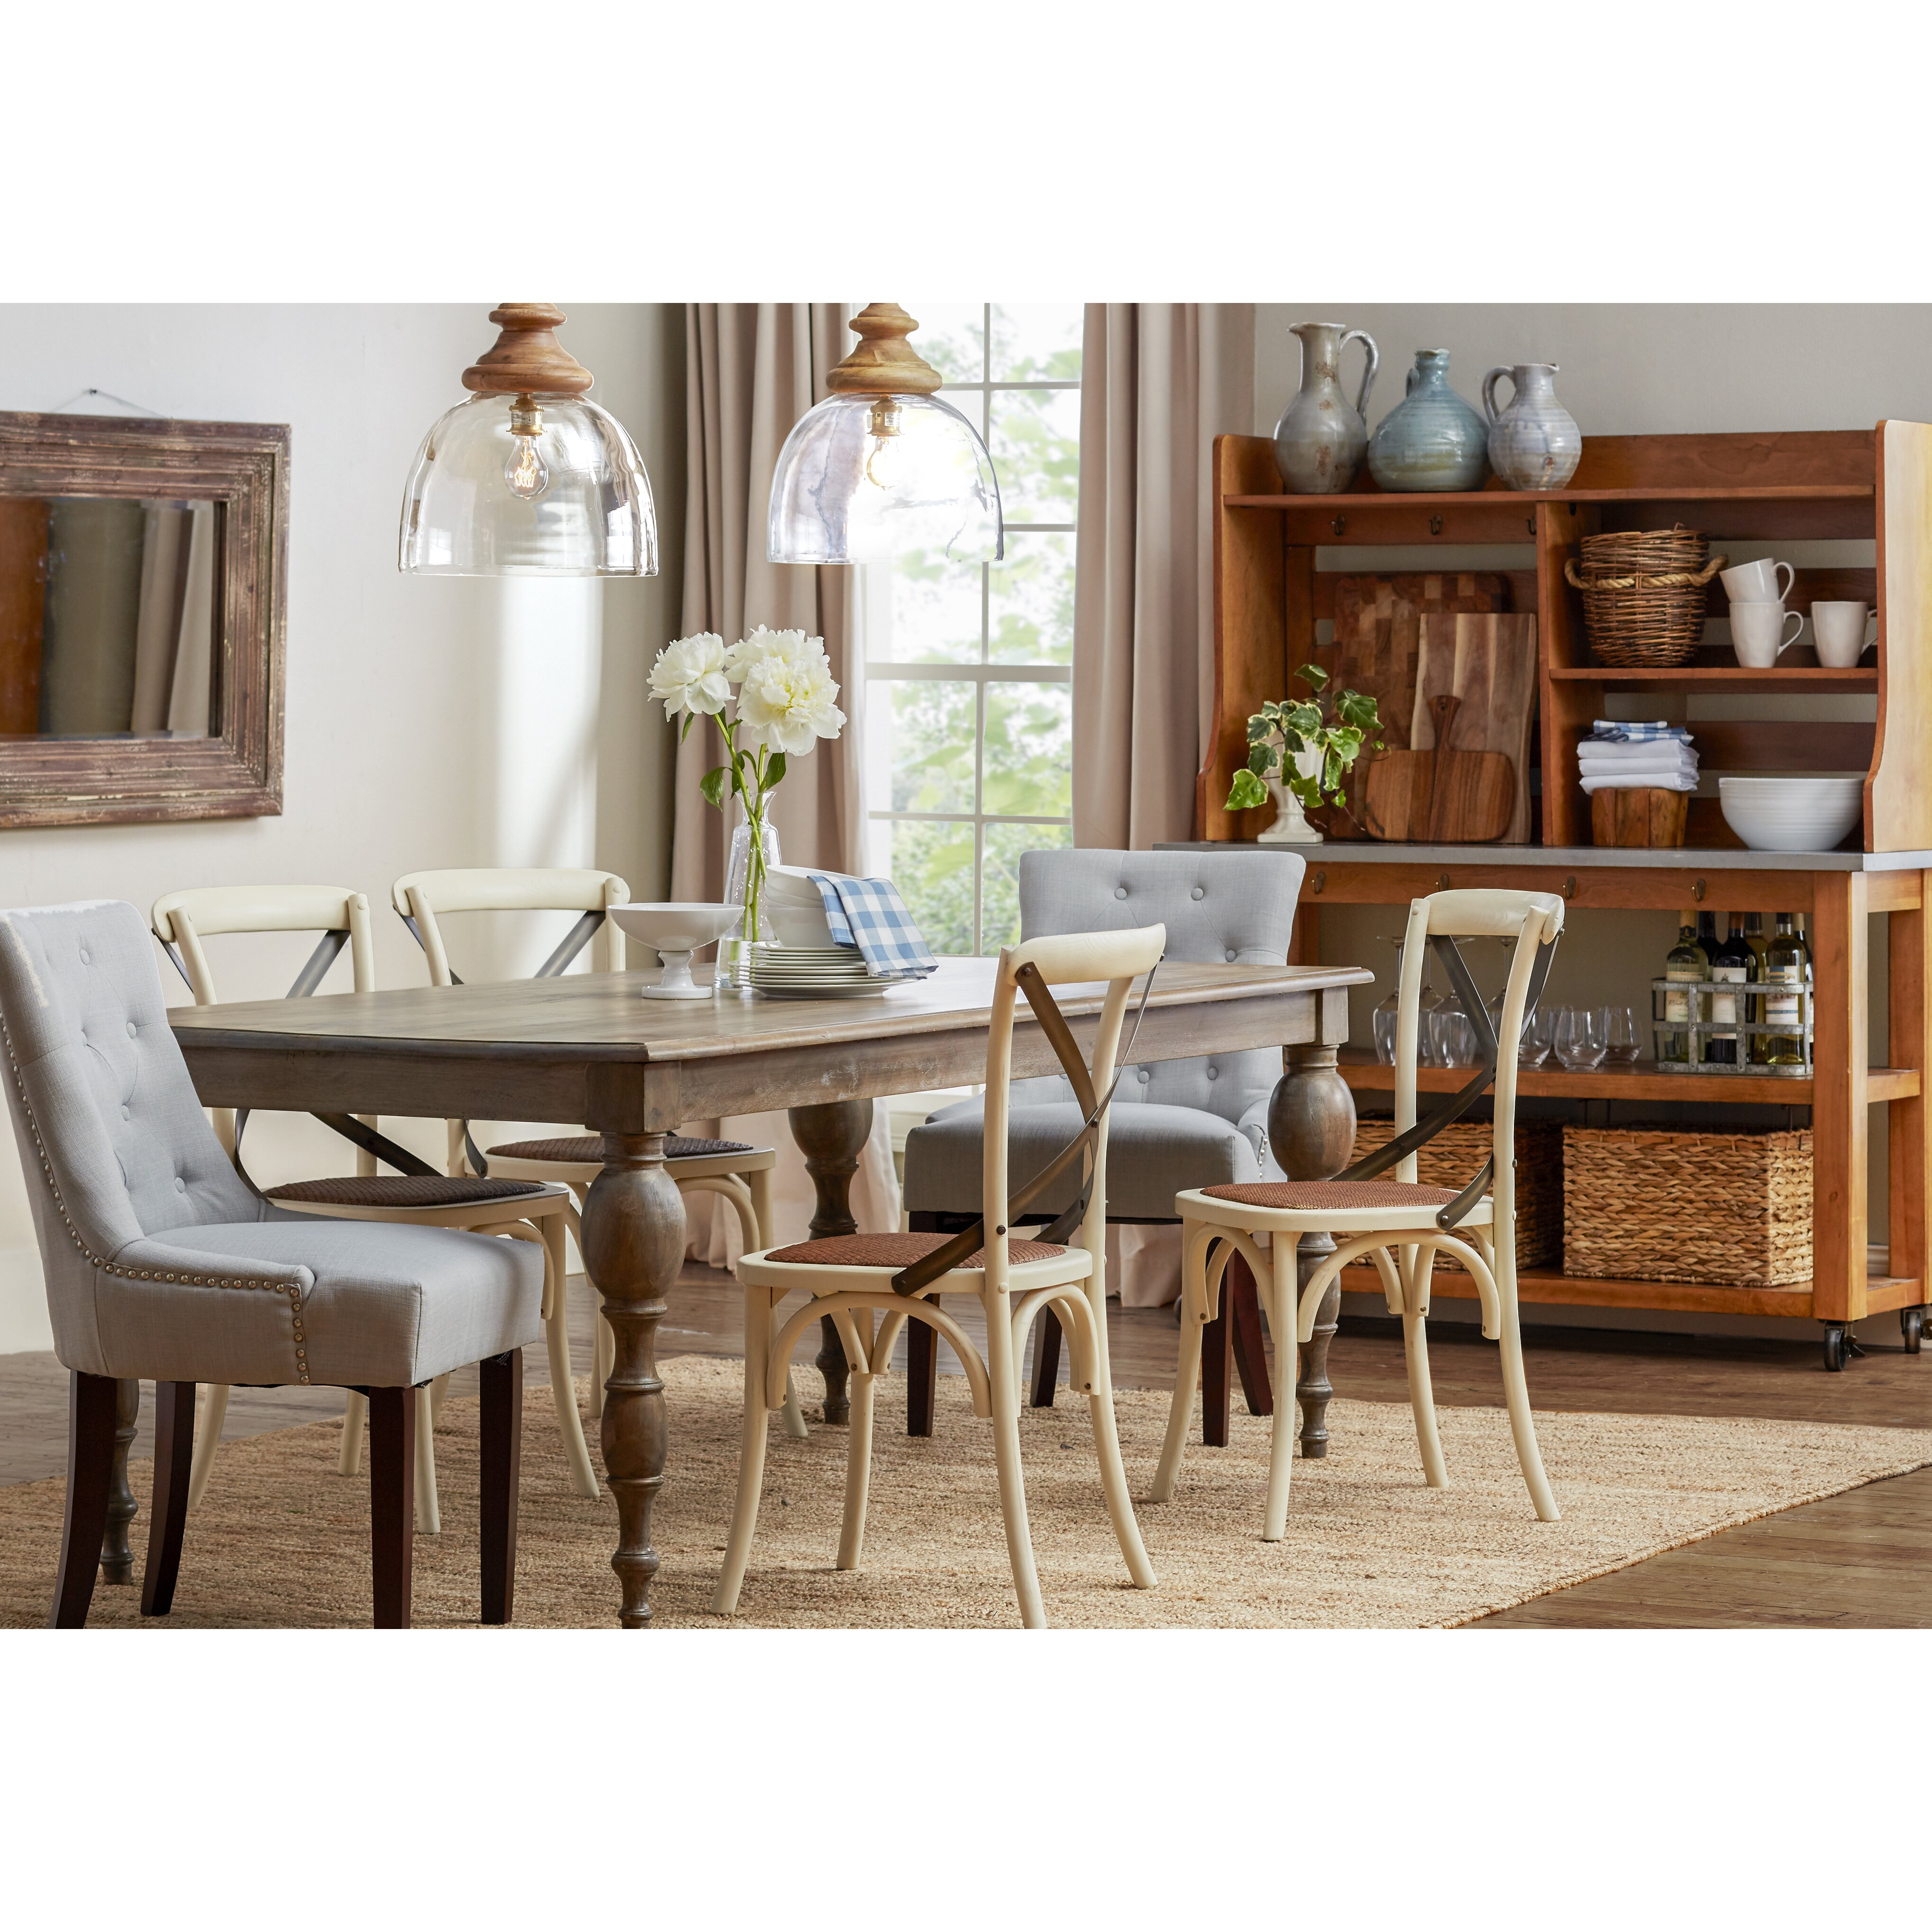 Wildon Home 174 Monticello Dining Table amp Reviews Wayfair : Barcelona Dining Table 1700414007 from www.wayfair.com size 4075 x 4075 jpeg 2602kB